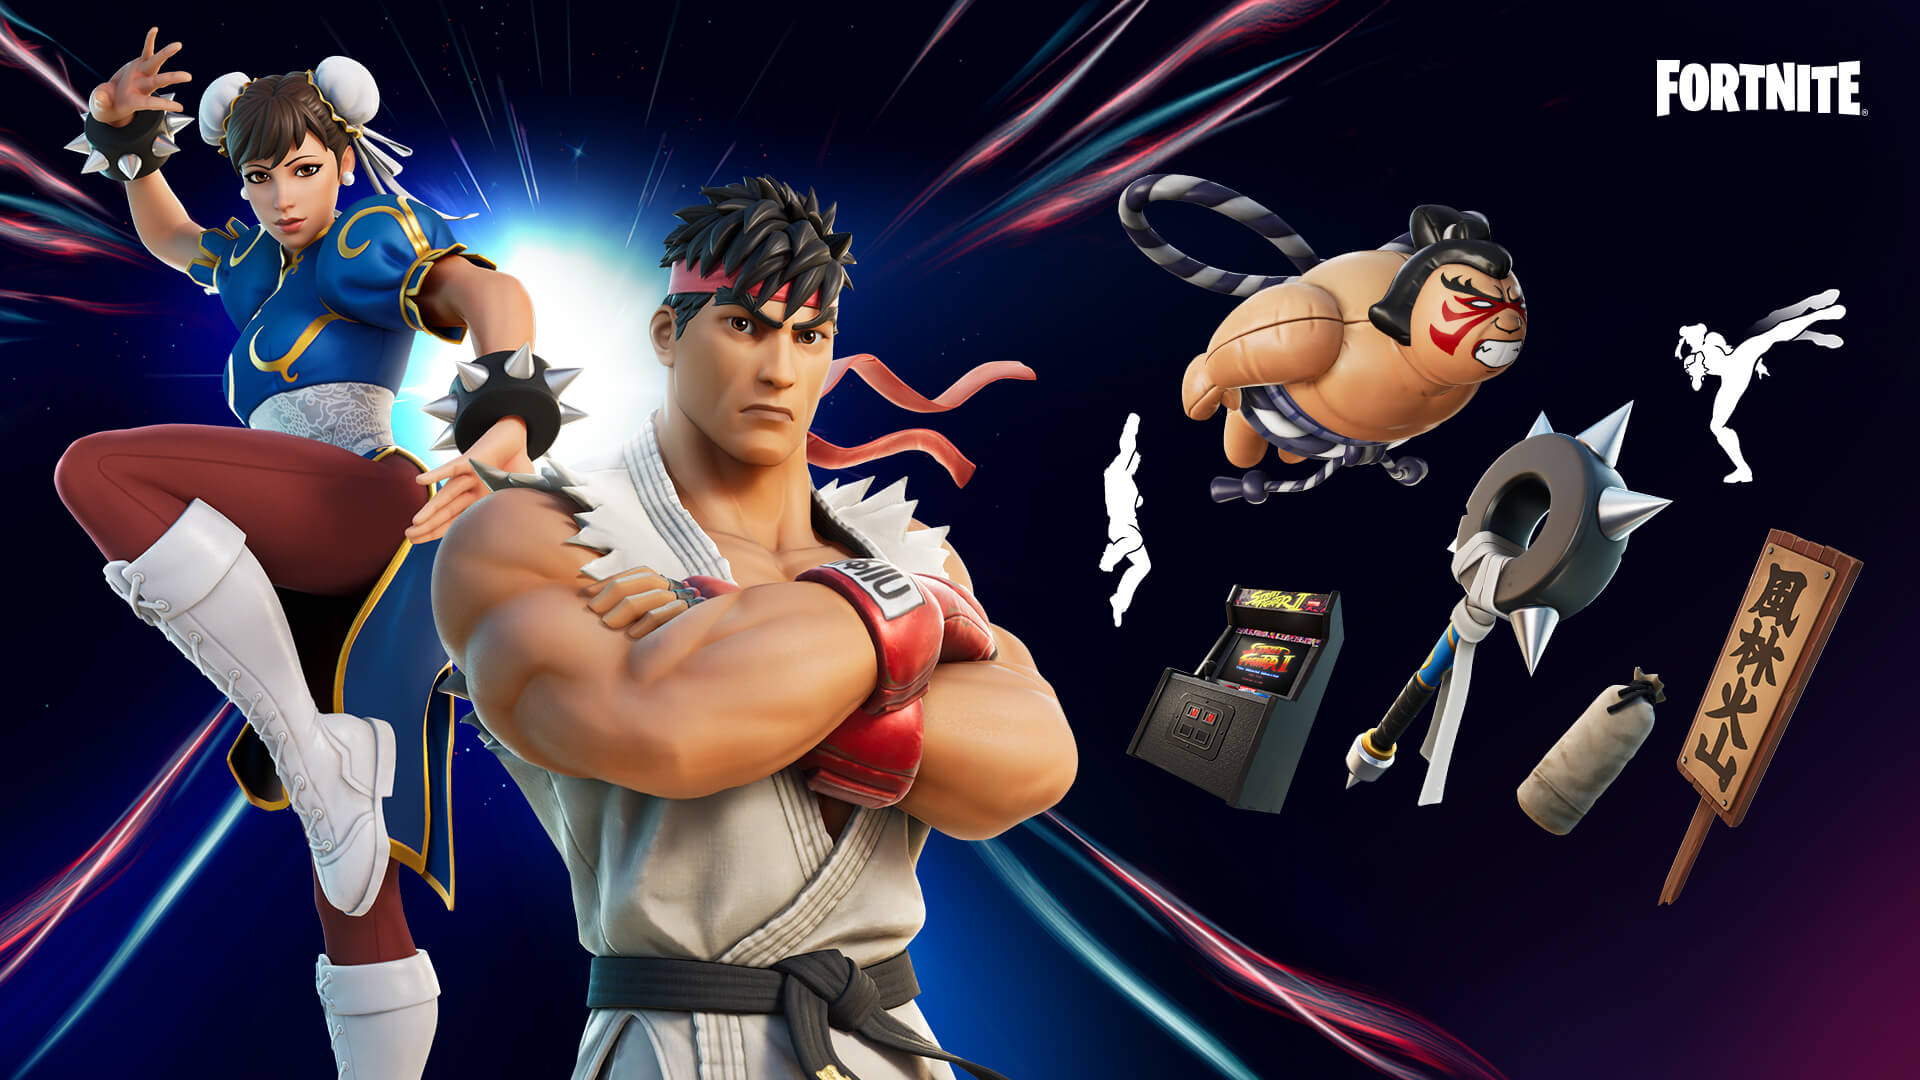 Fortnite's Street Fighter update is available right now